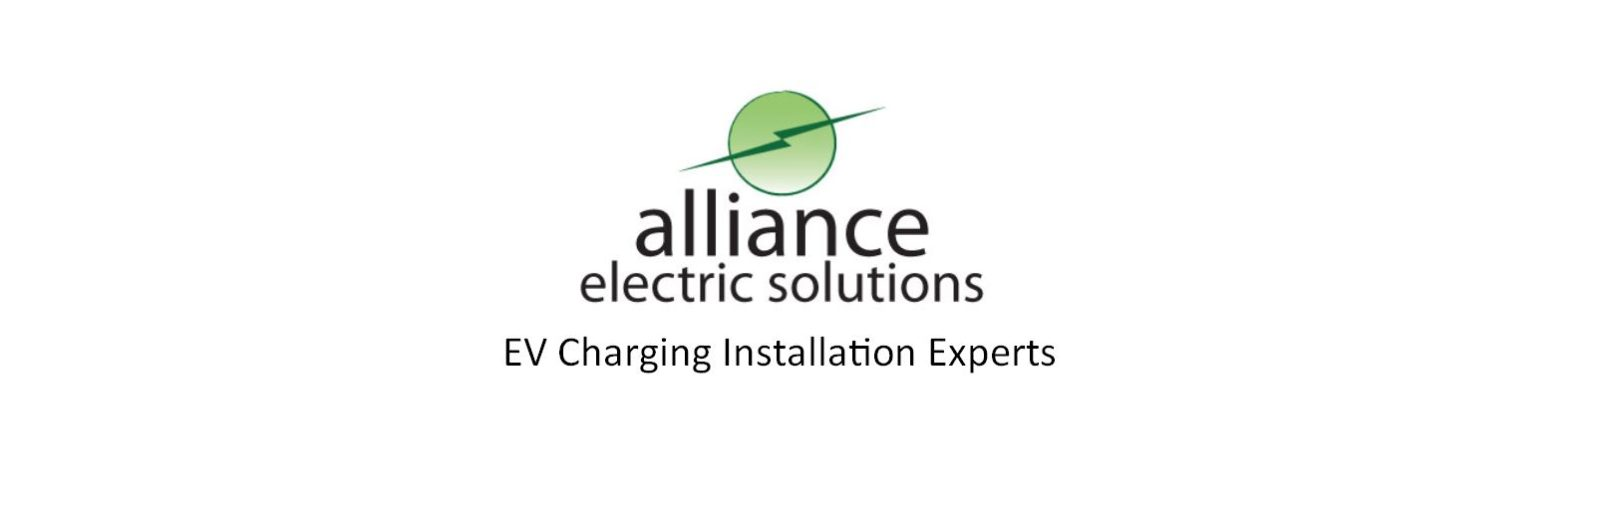 Alliance Electric Solutions